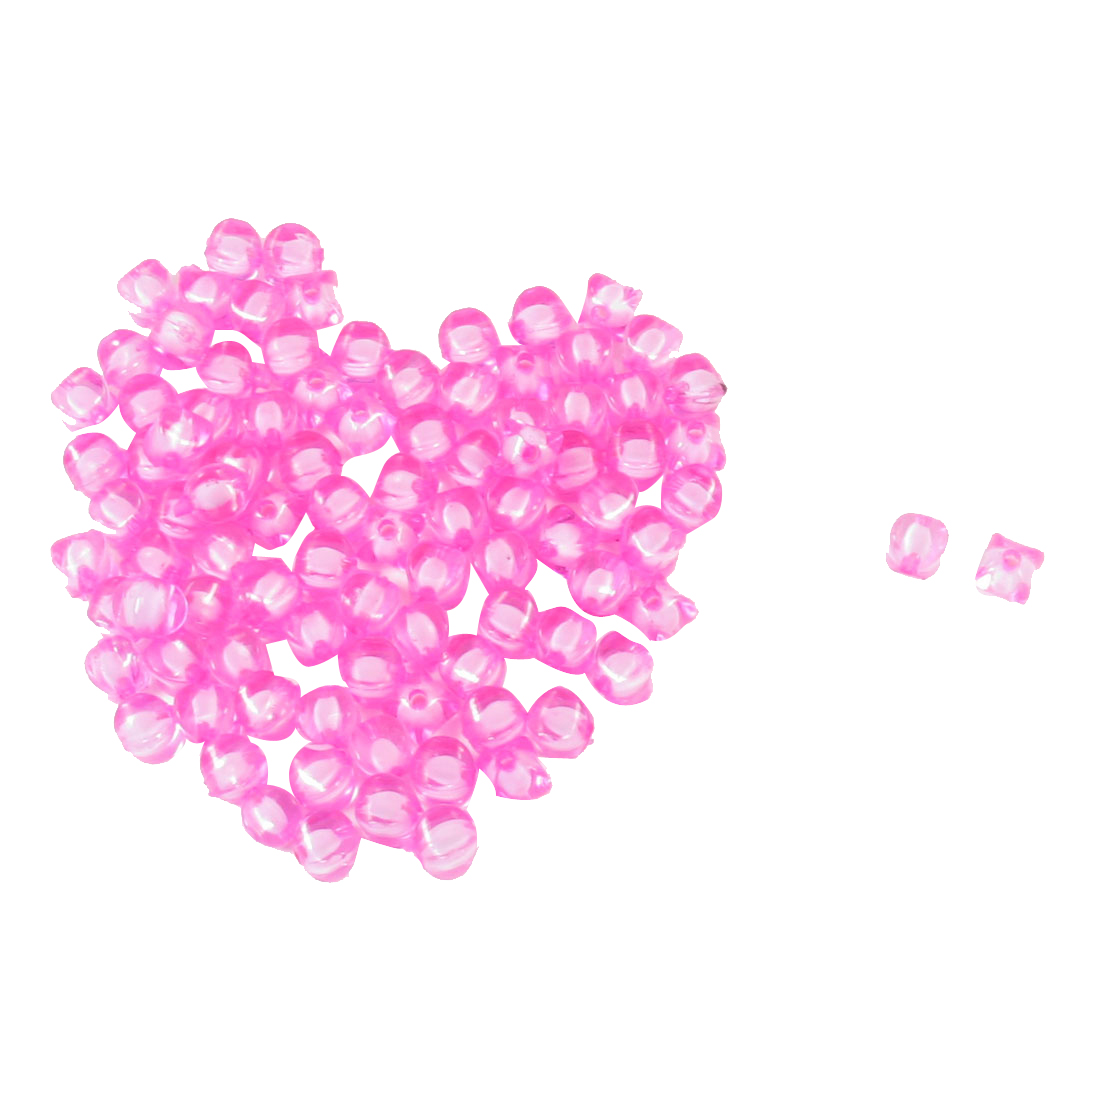 93 Pcs Jewelry Findings DIY Fuchsia Plastic Square Shaped Beads